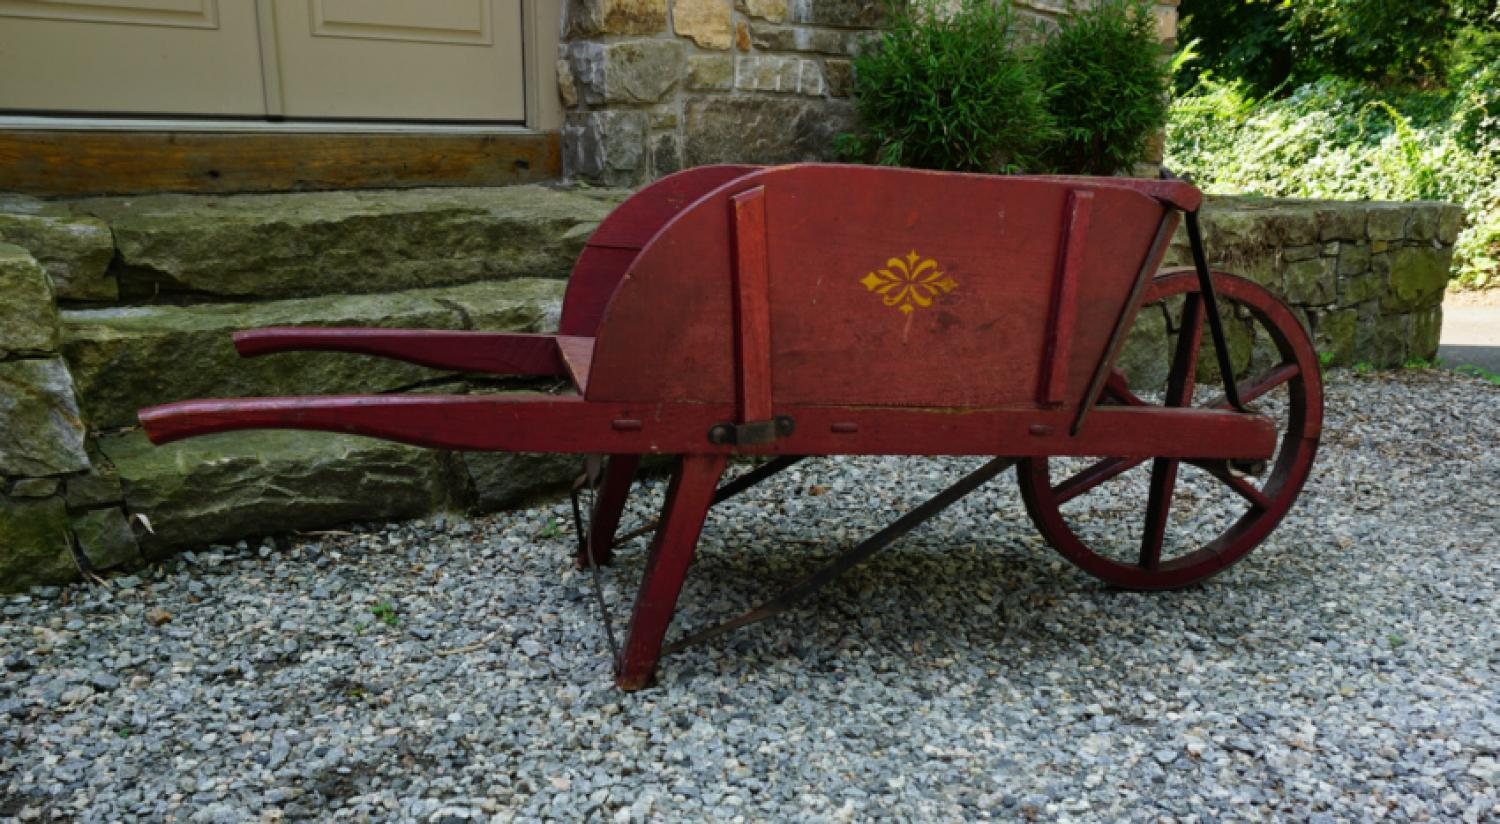 Antique wheelbarrow in original red paint c1900